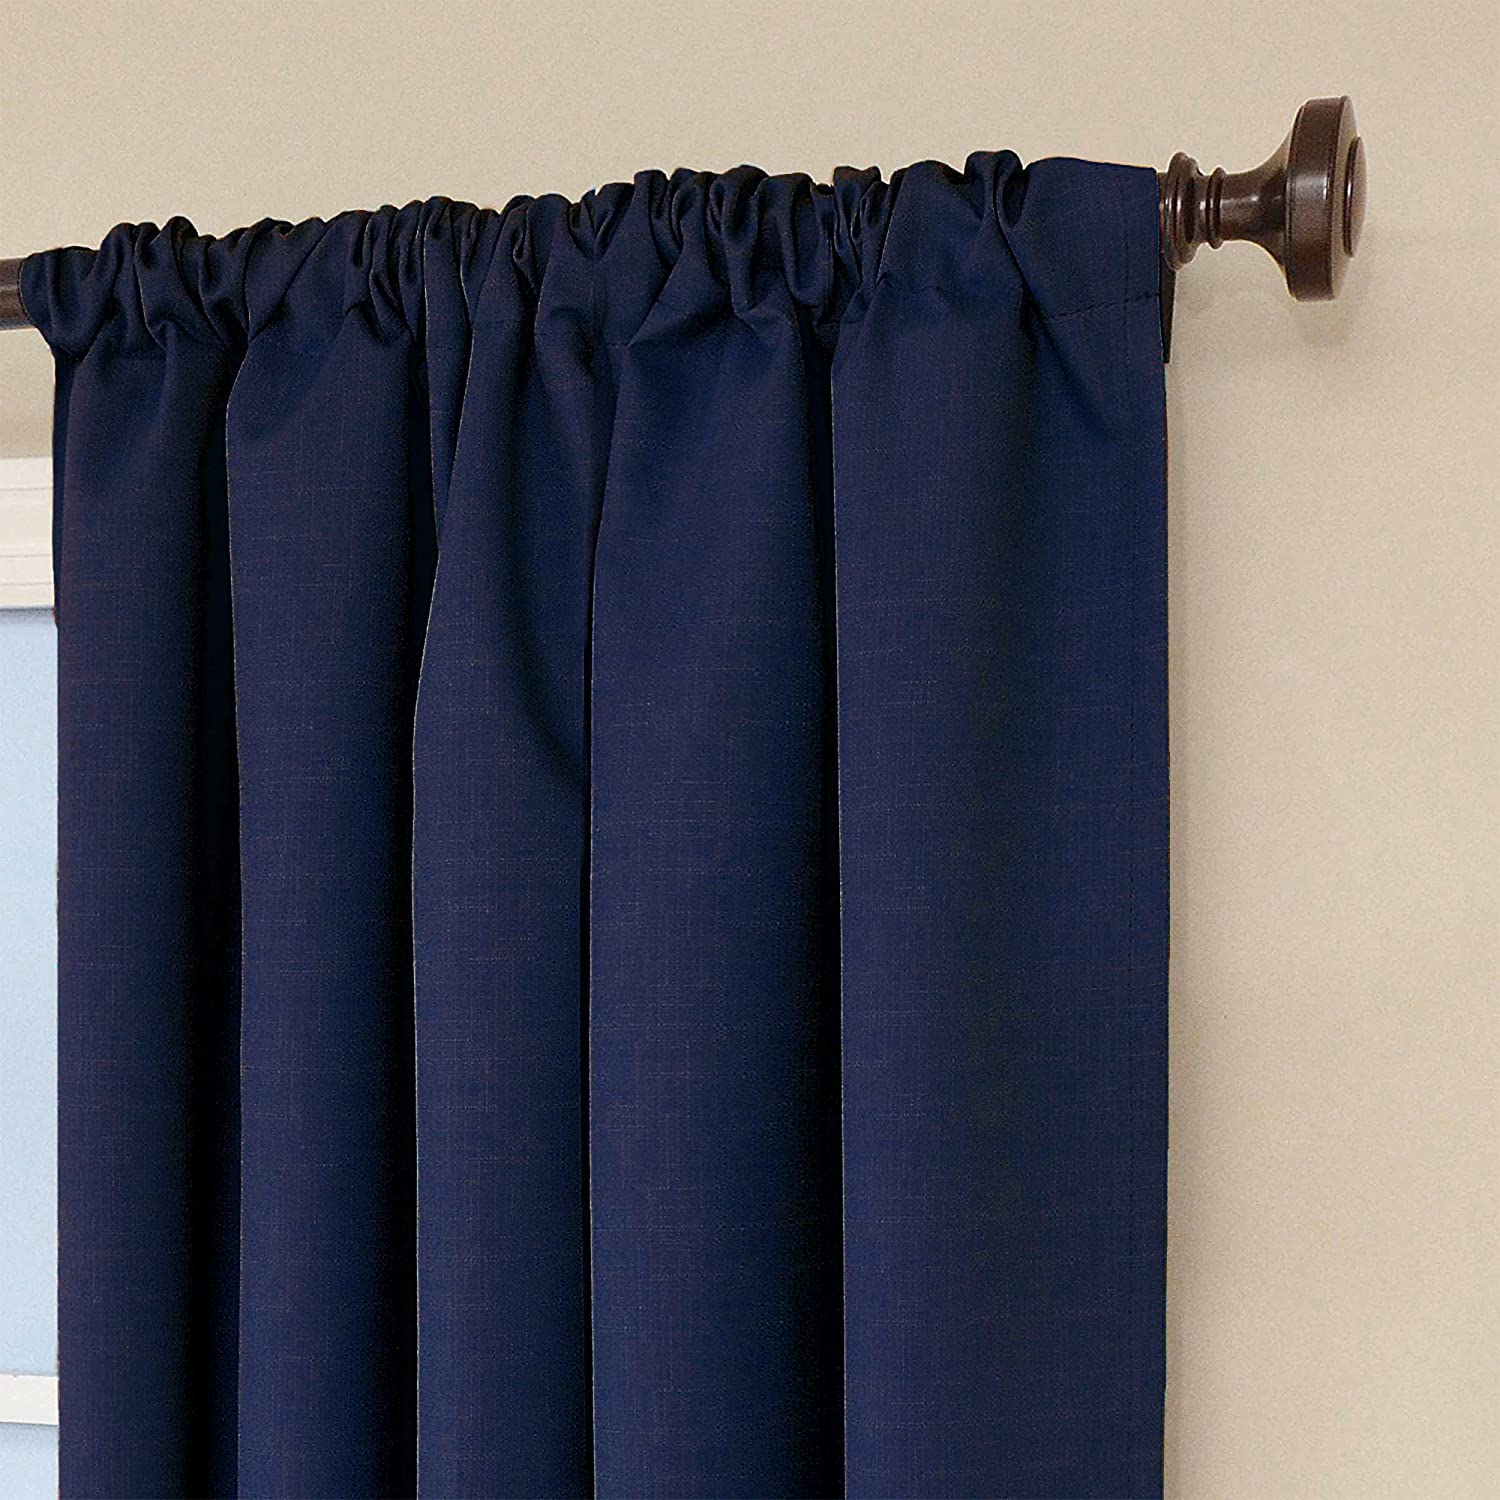 ... Kendall Blackout Thermal Curtain Panel,Denim,84 -Inch , 1 Panel, NEW